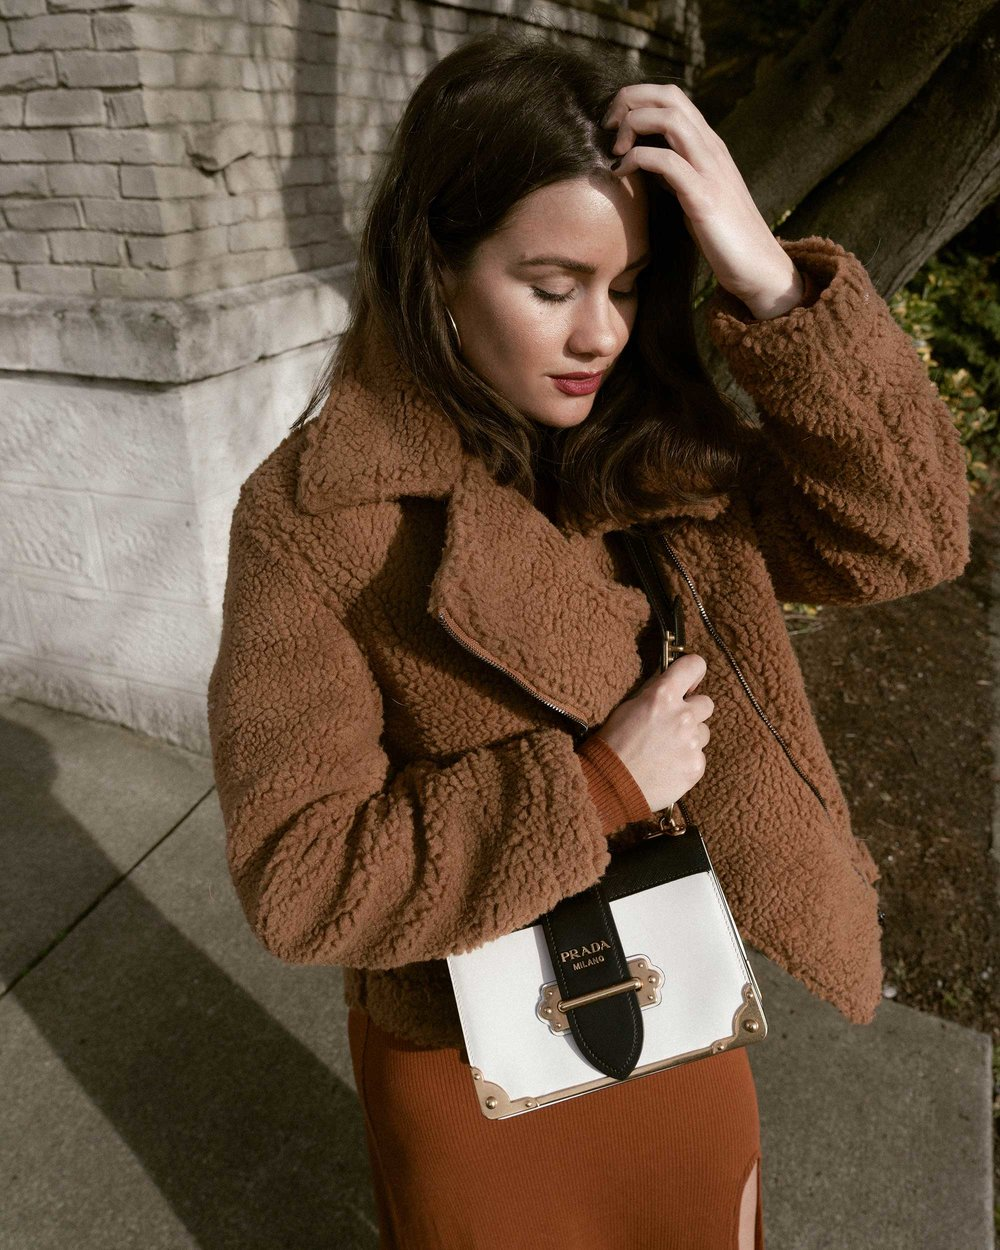 Sarah Butler of Sarah Styles Seattle wears ASTR the Label Faux Shearling Moto Jacket and Prada Saffiano Leather Cahier Bag for a causal winter outfit | @sarahchristine, Seattle Blogger12.jpg